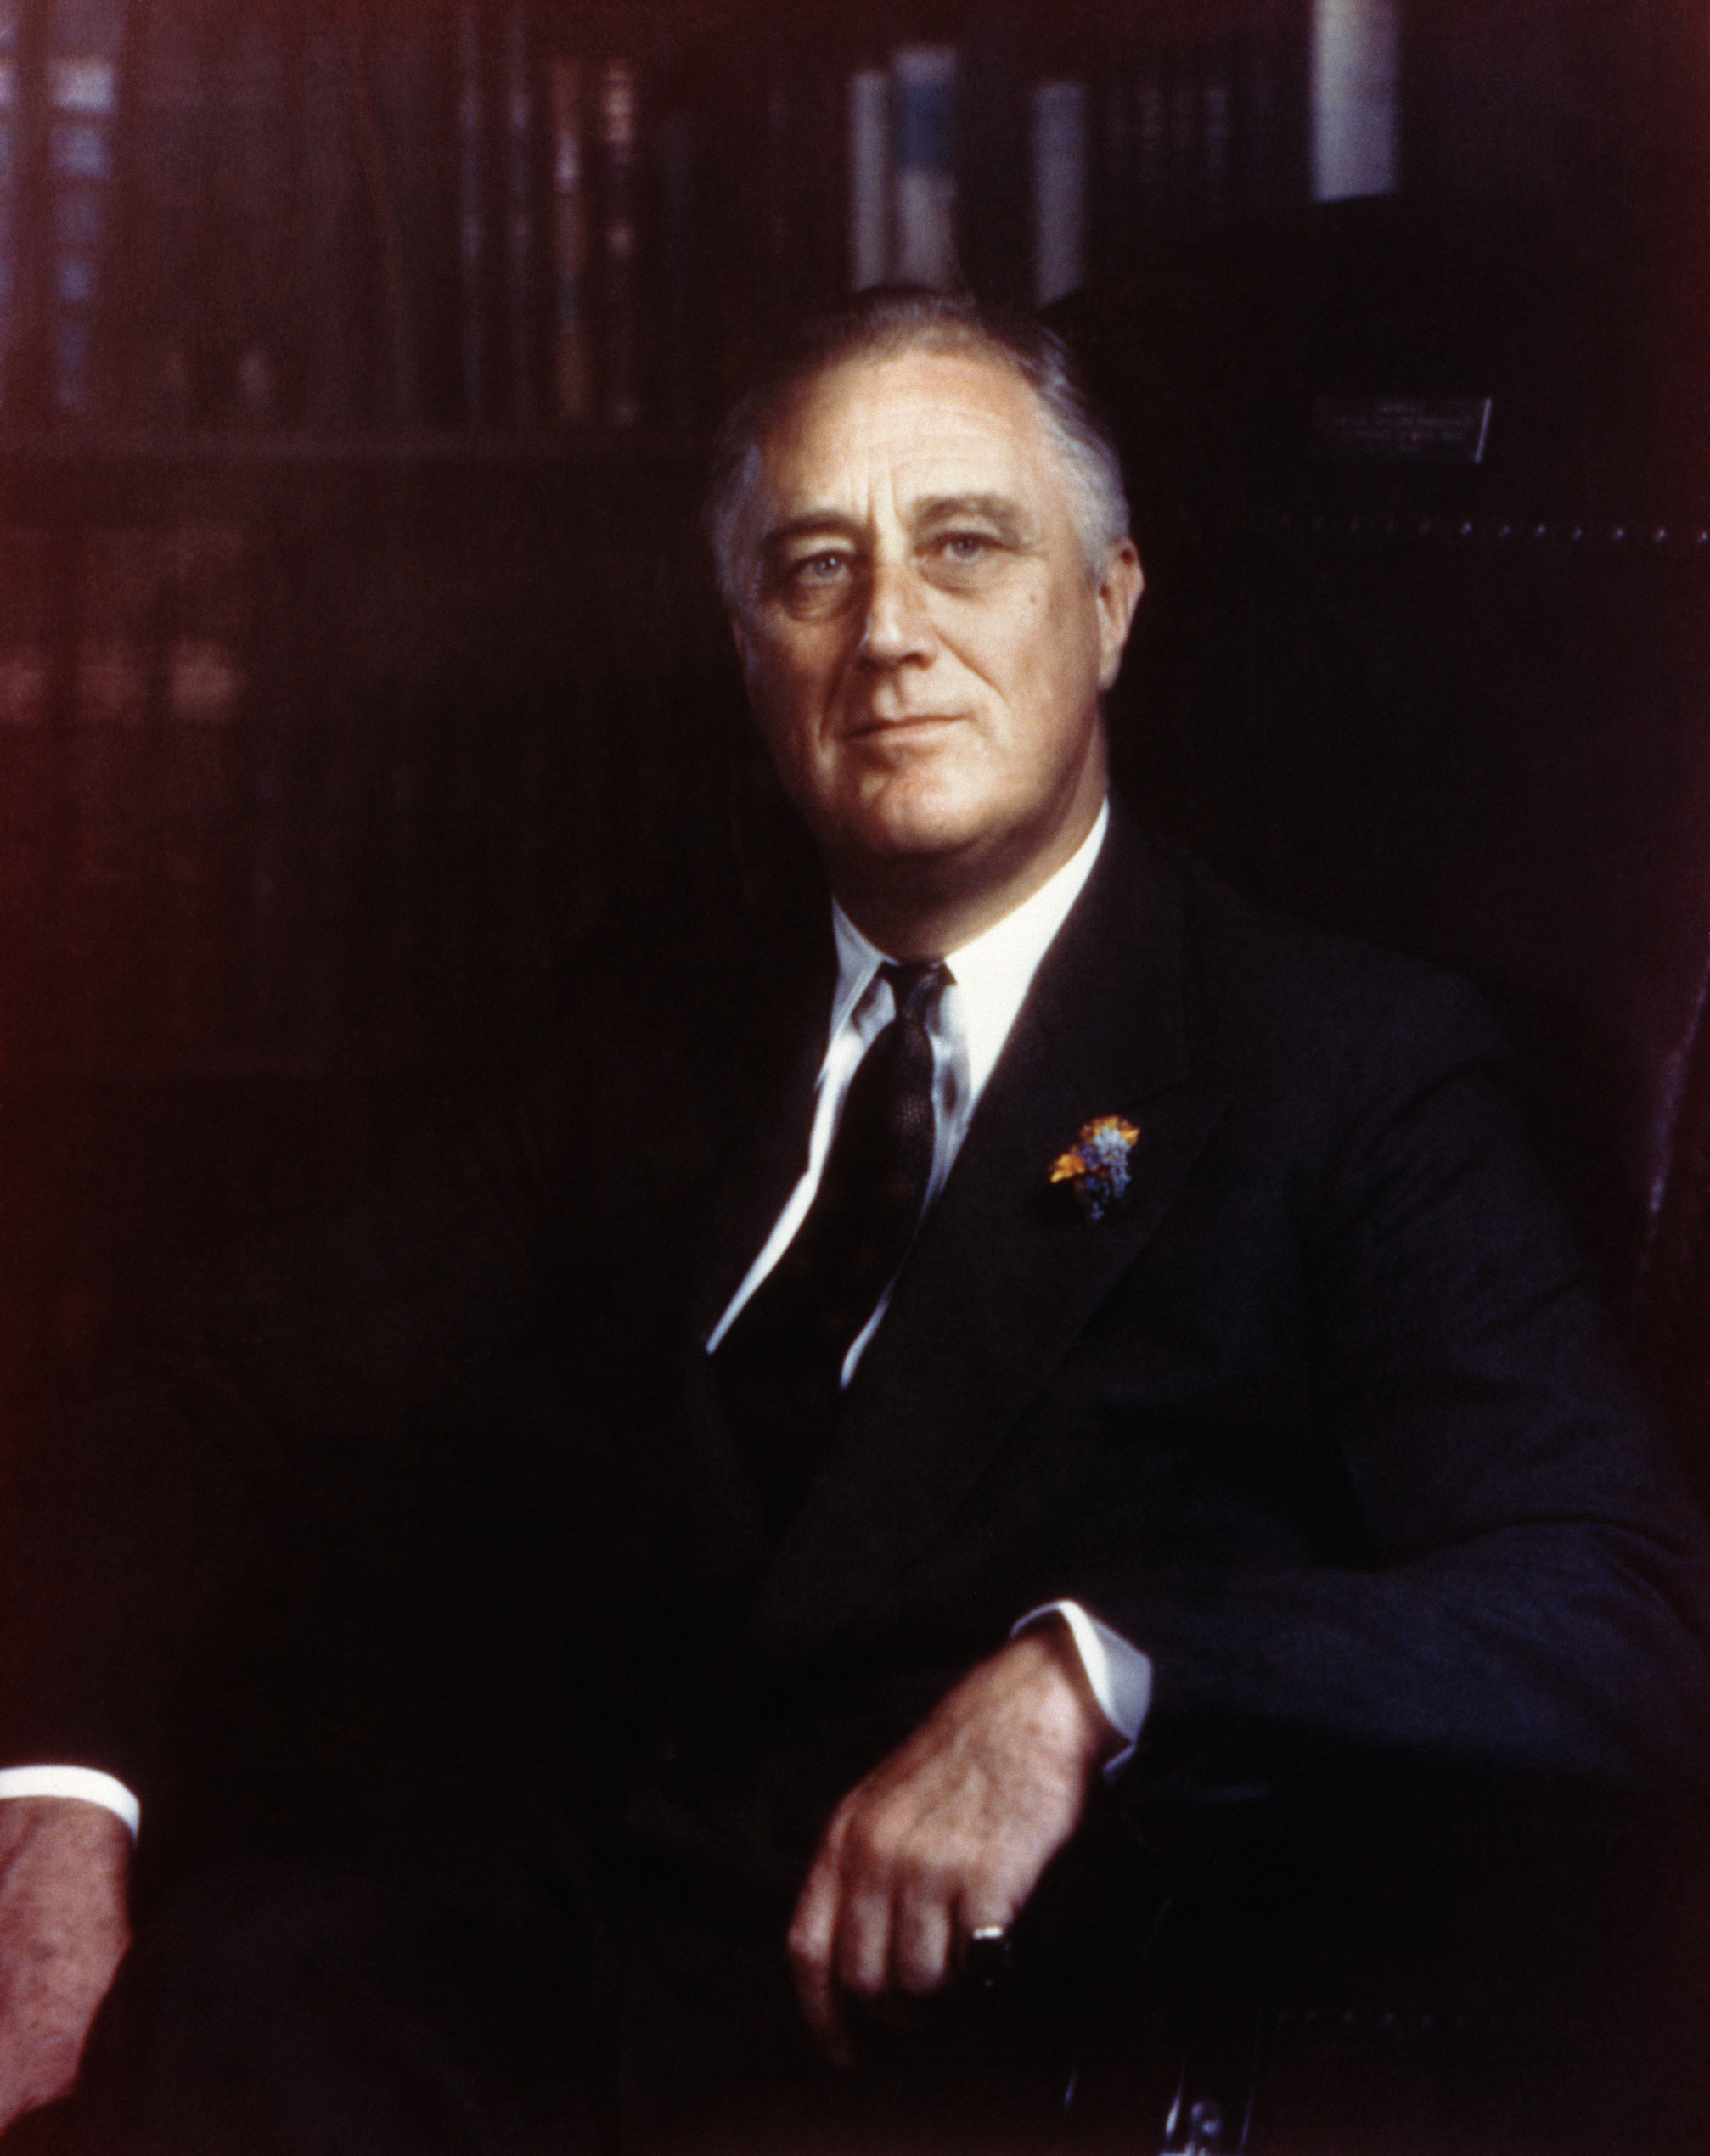 an introduction to the political changes in the united states in the 1930s and franklin roosevelt Fdr's response to the great depression and the economy in the united states franklin d roosevelt's political and ideological.